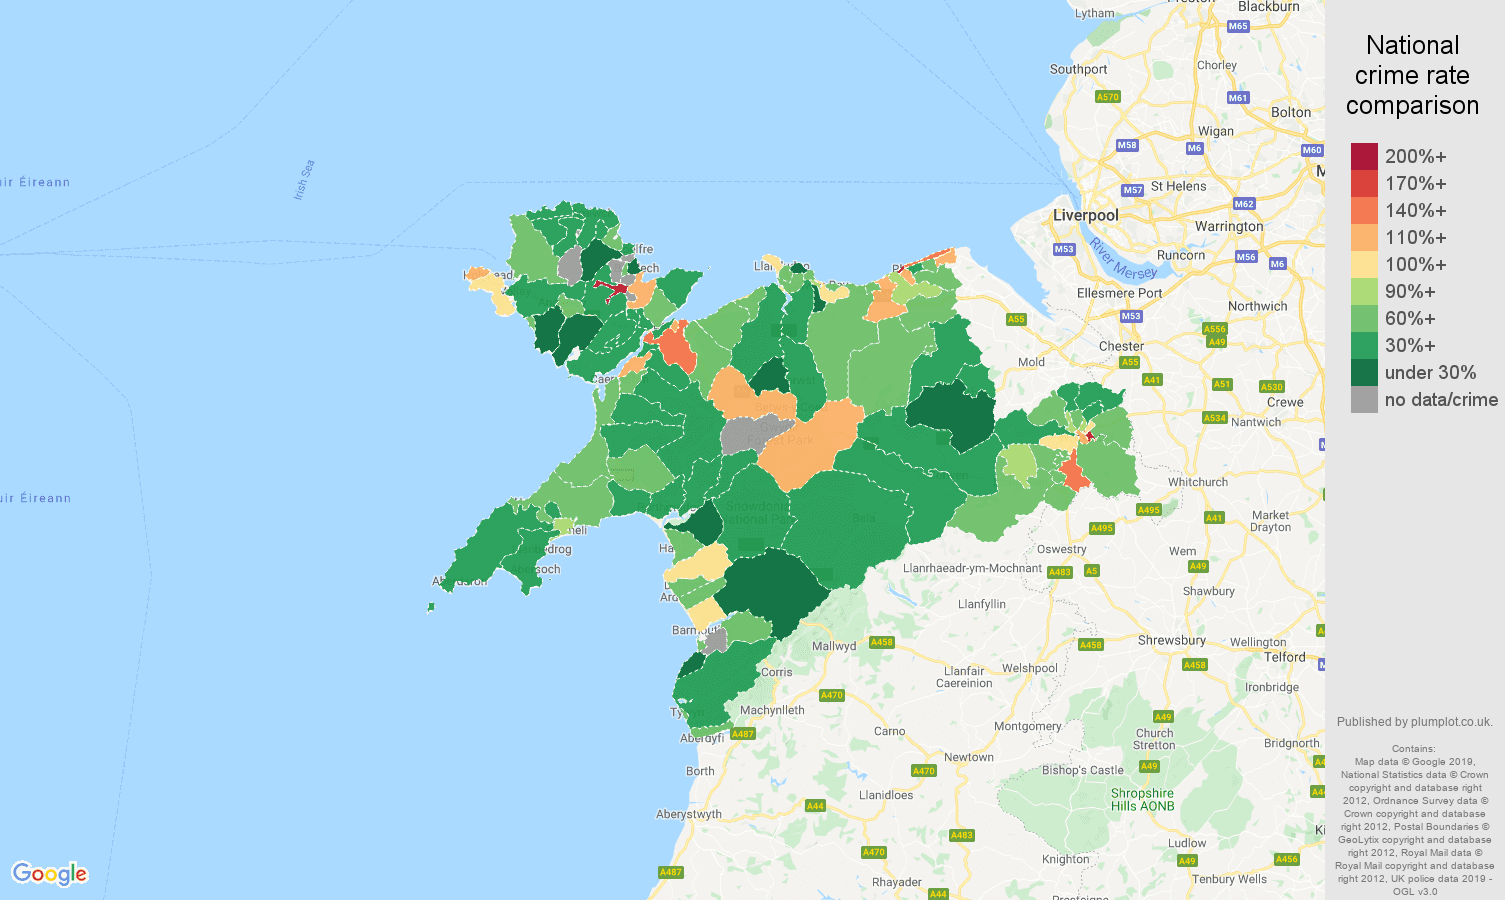 Llandudno other theft crime rate comparison map